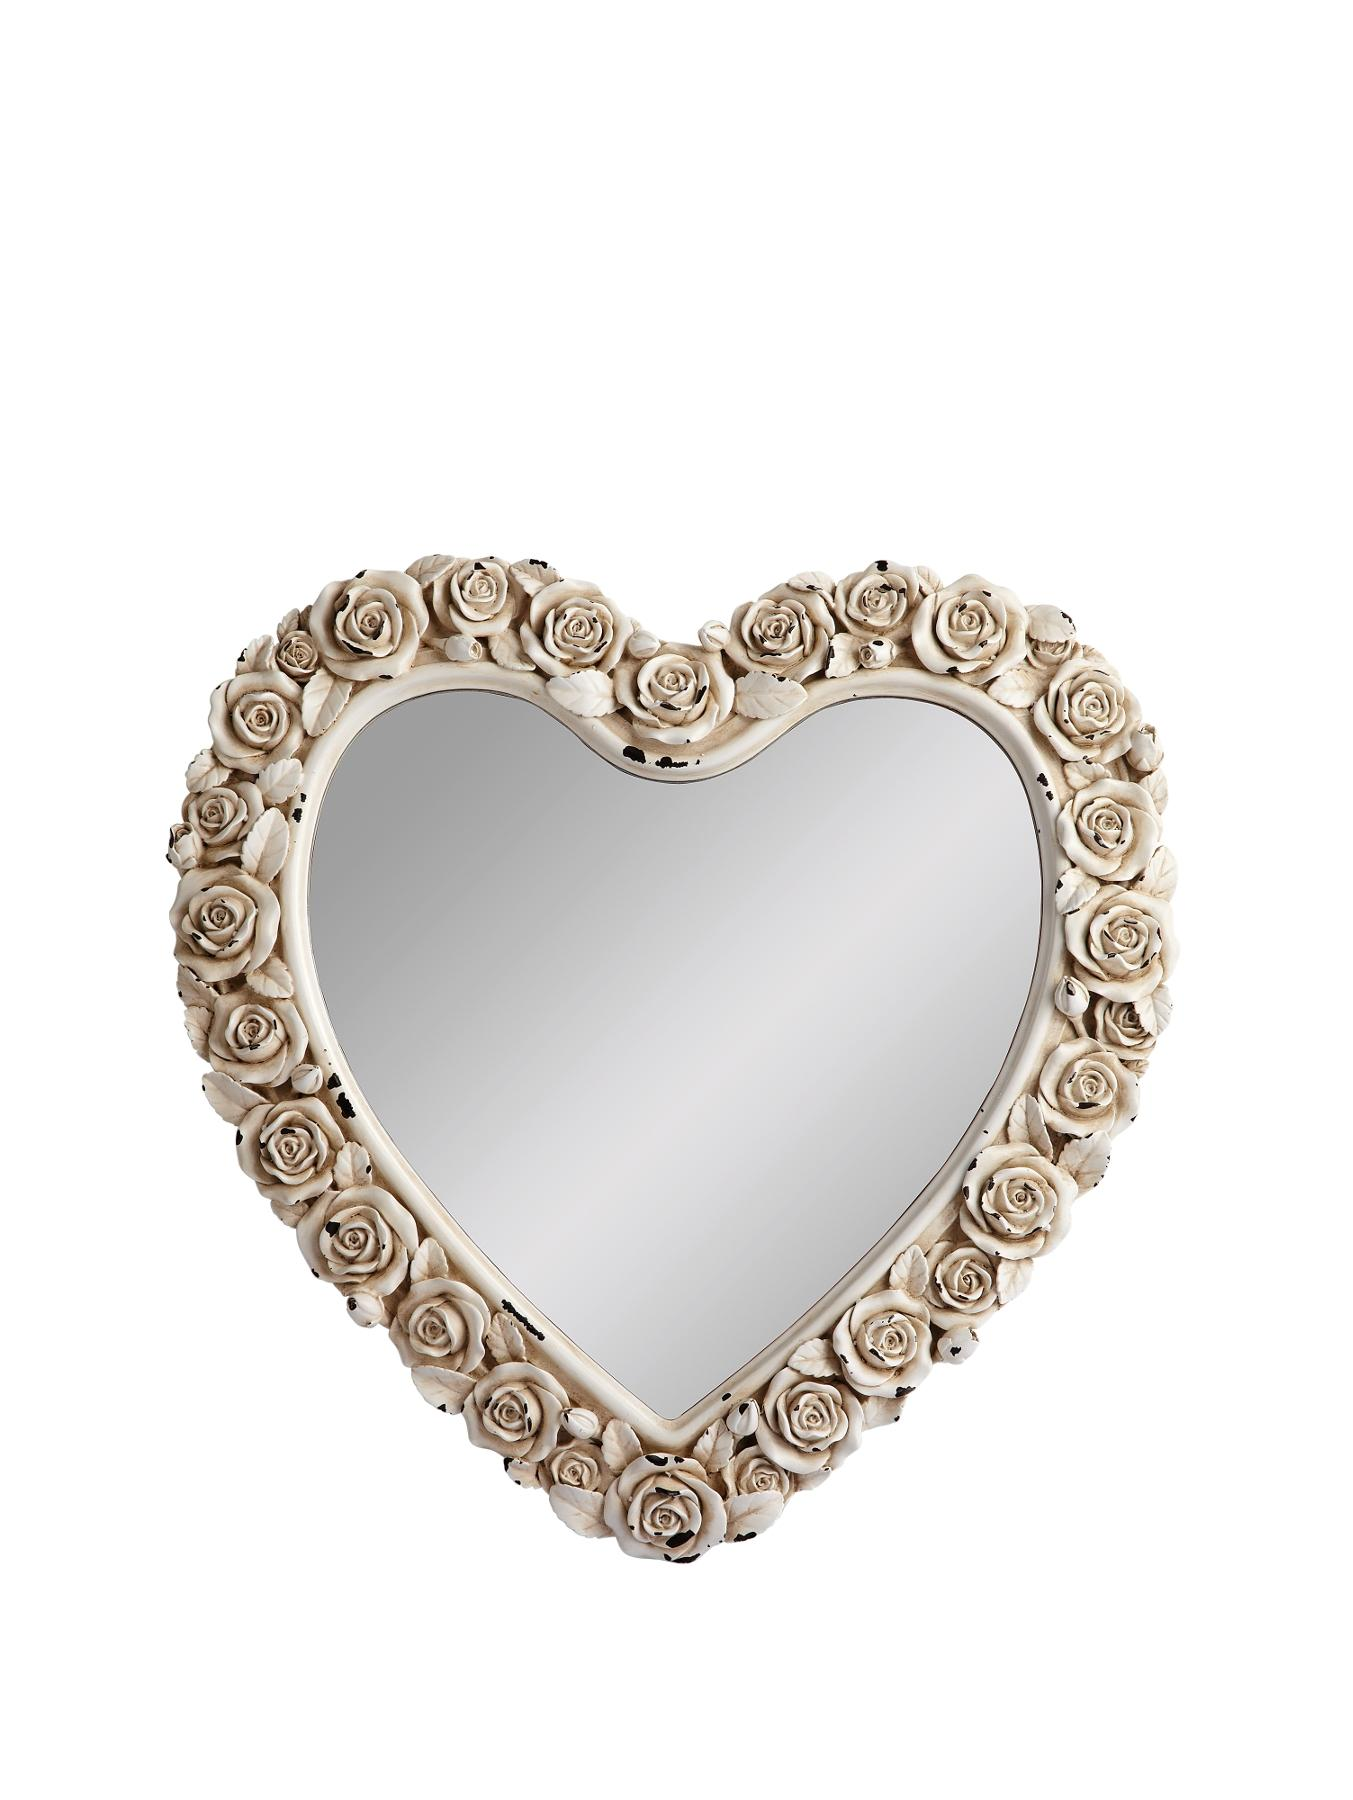 Heart Shaped Mirror With Rose Detail